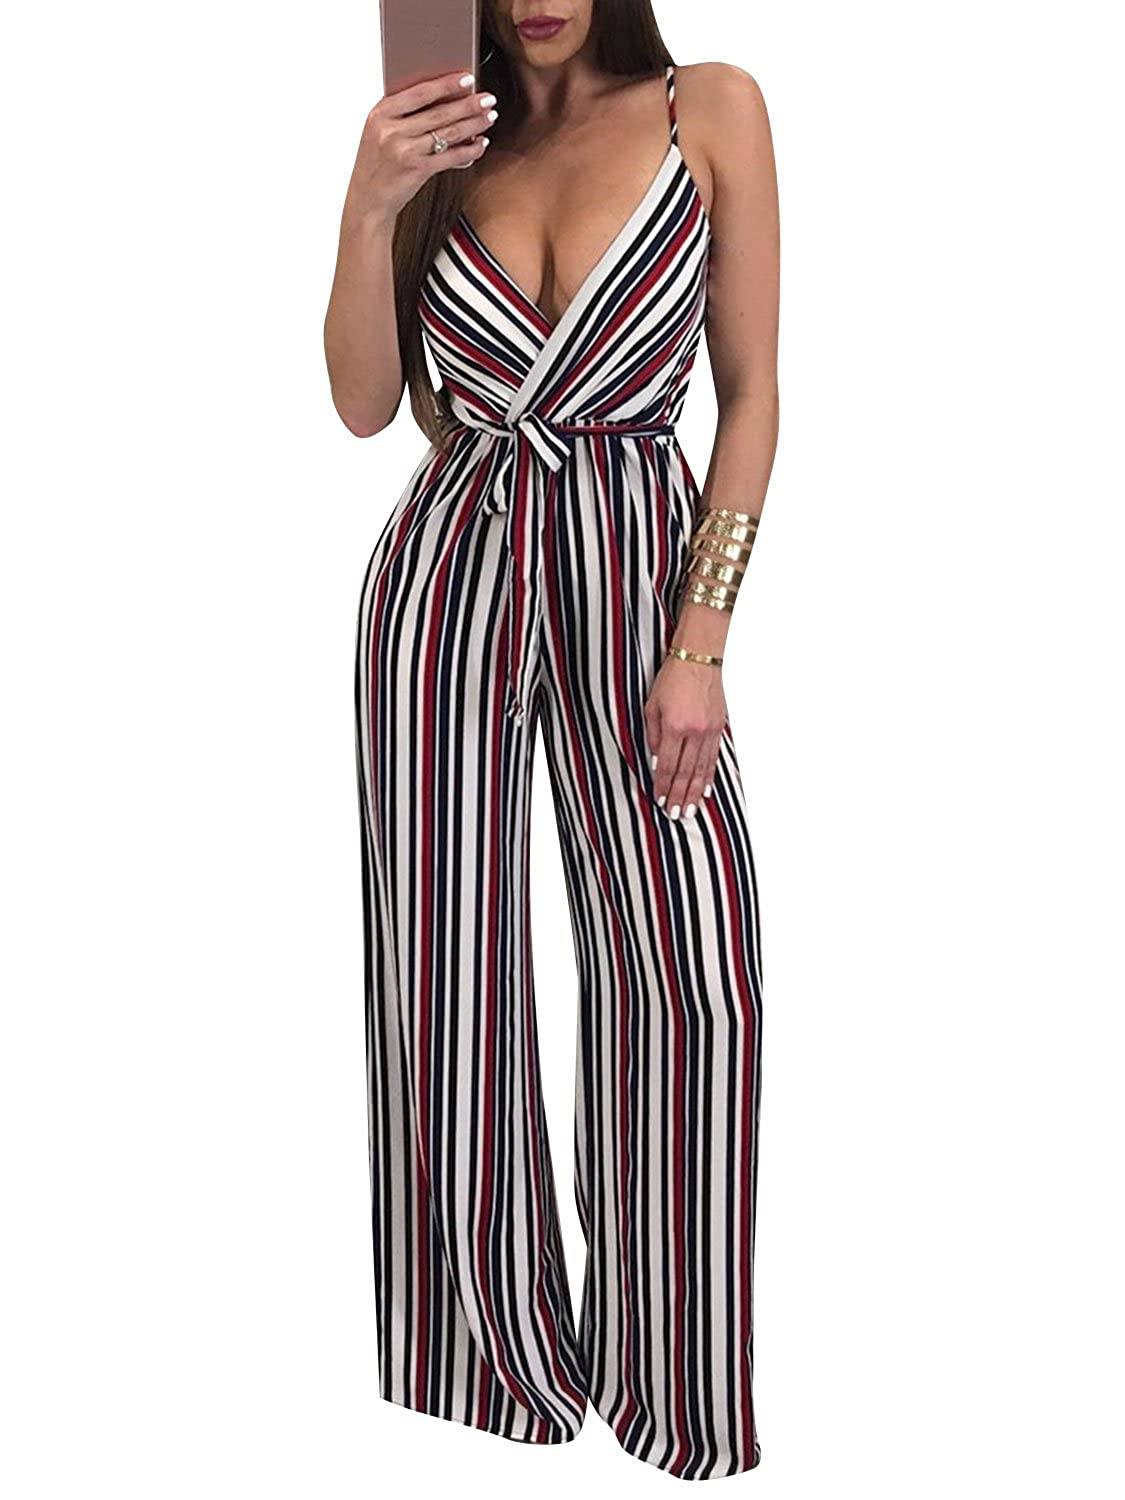 f6515321267 Amazon.com  Glamaker Women s Sexy Deep V Neck Strap Backless Tie Waist  Jumpsuit Sleeveless Wide Leg Pants Suit  Clothing